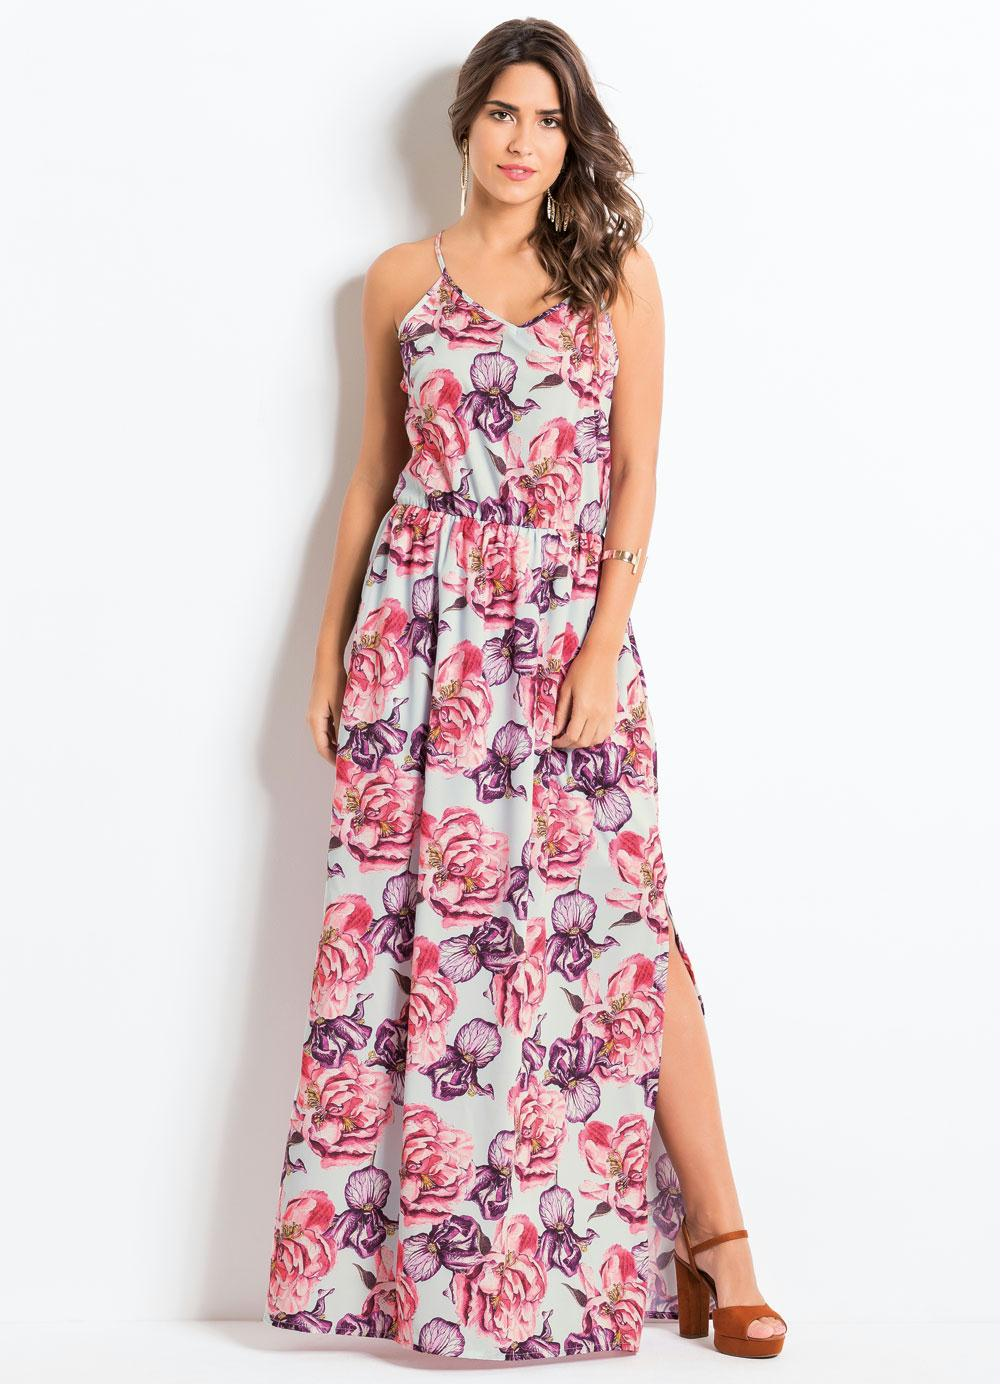 bb83cfe1d Vestido Longo Quintess Floral com Fendas - Quintess